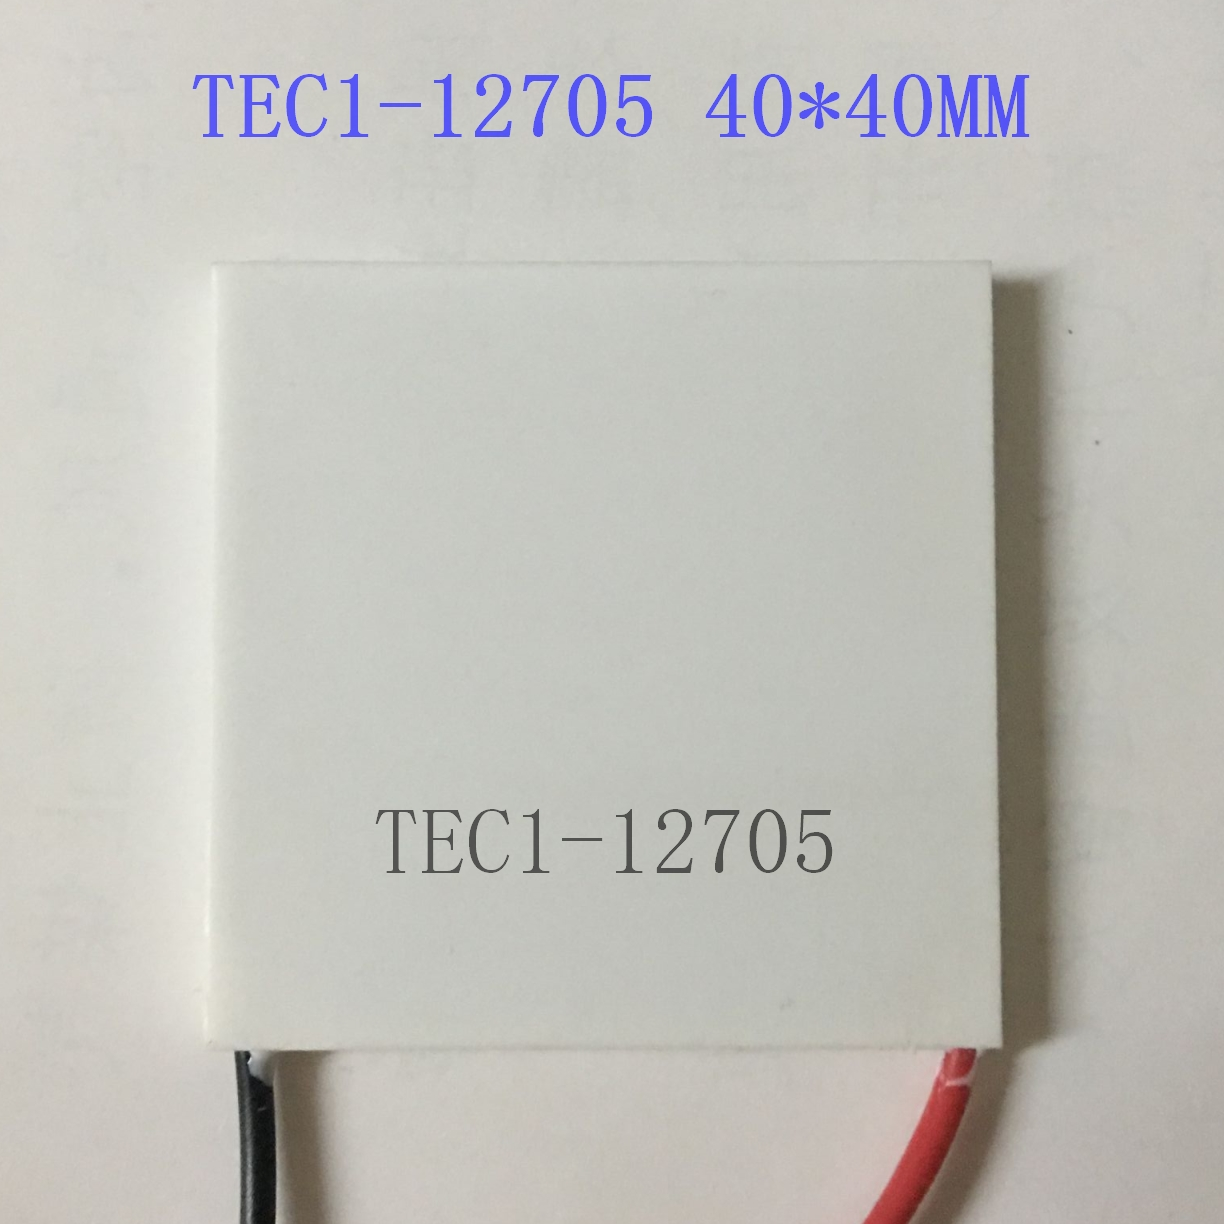 TEC1-12705 40*40MM new semiconductor refrigeration sheet on board refrigerator refrigerator dehumidifier high end medical device semiconductor refrigeration chip tec1 12708 6 combination of 40 40mm